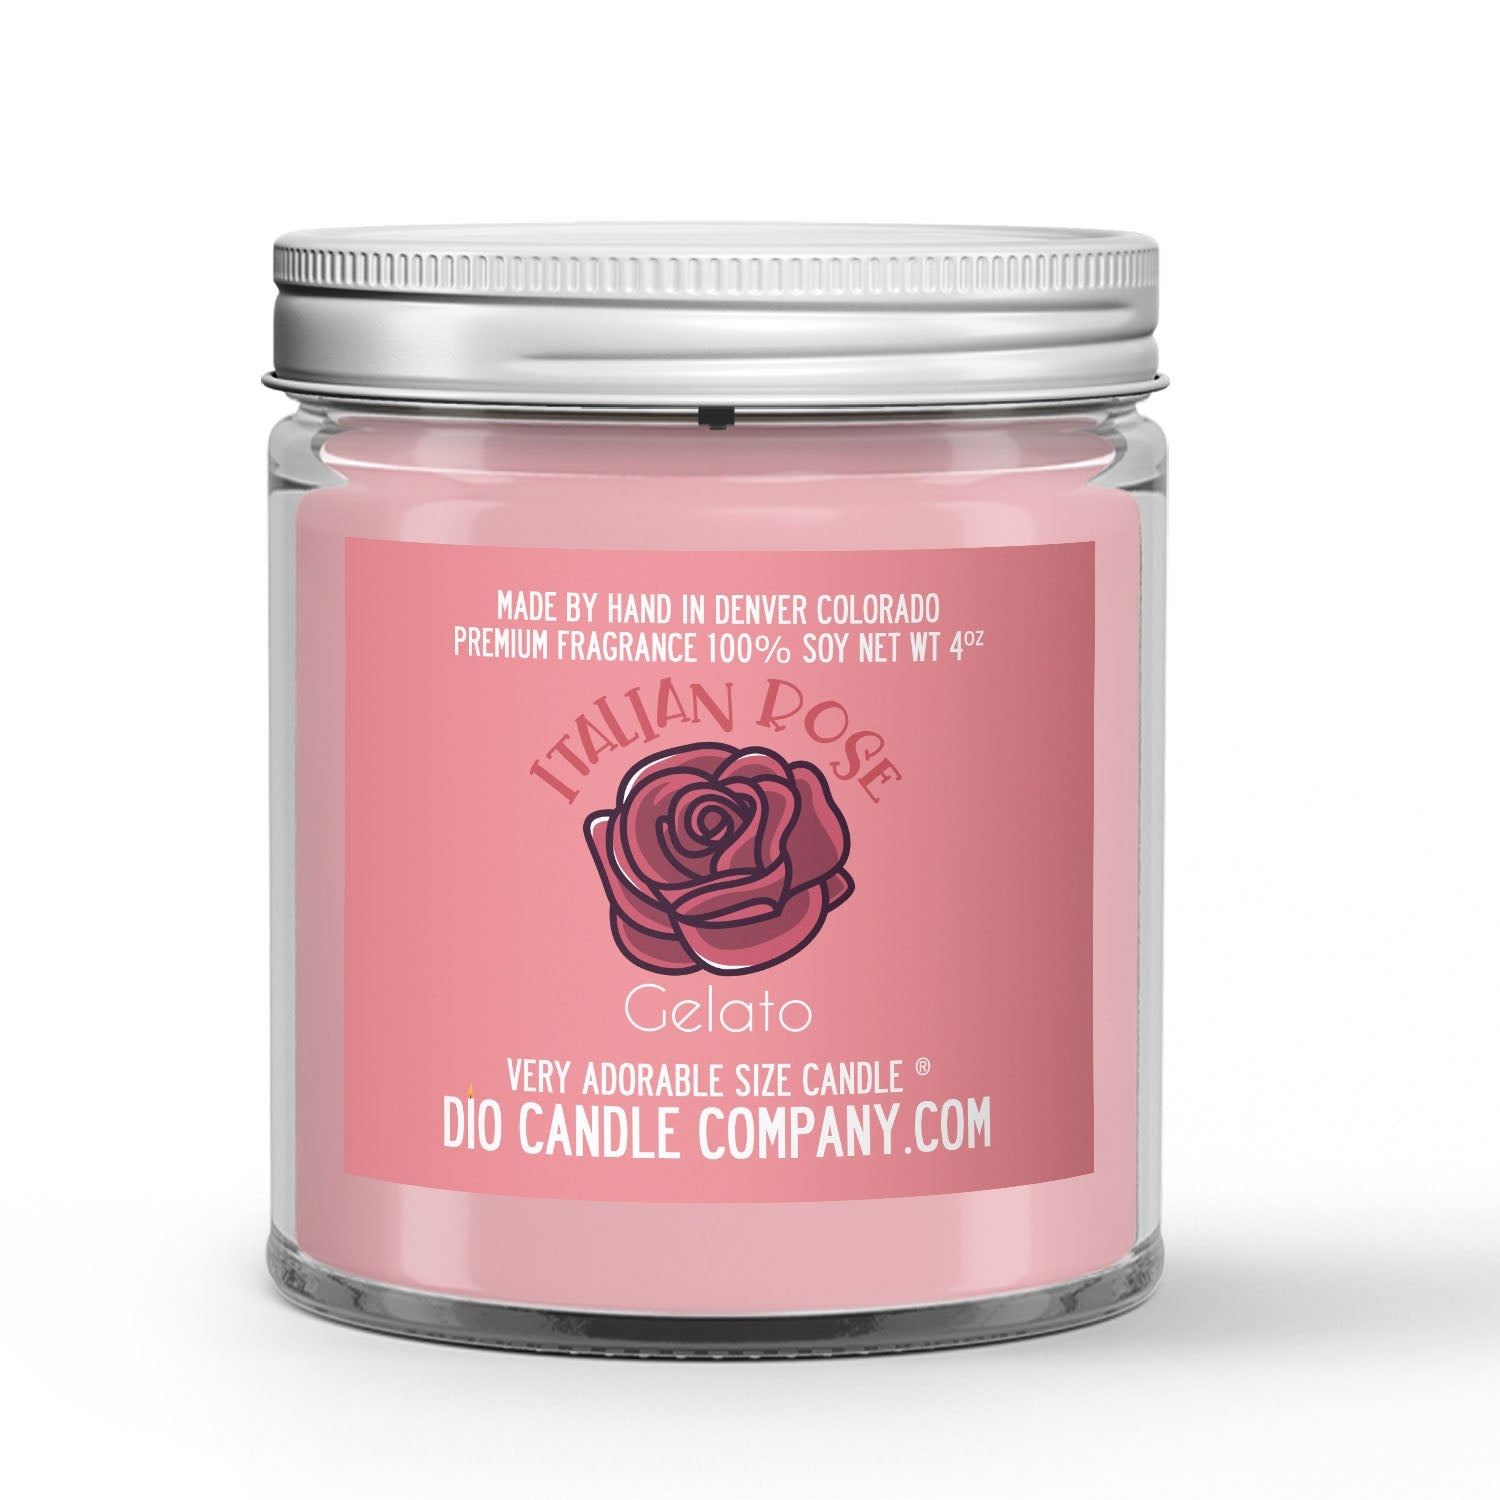 Italian Rose Gelato Candle Rose - Cream - Sugar Scented - Dio Candle Company